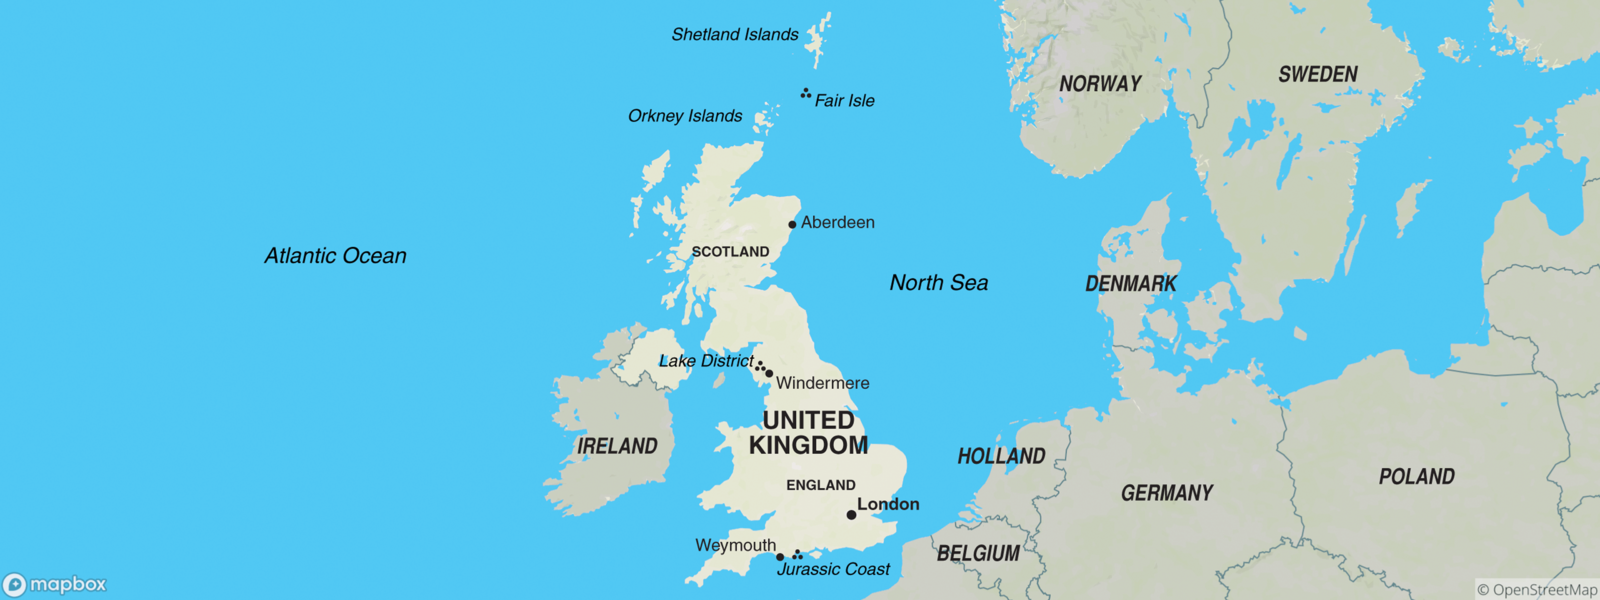 United Kingdom of Great Britain map